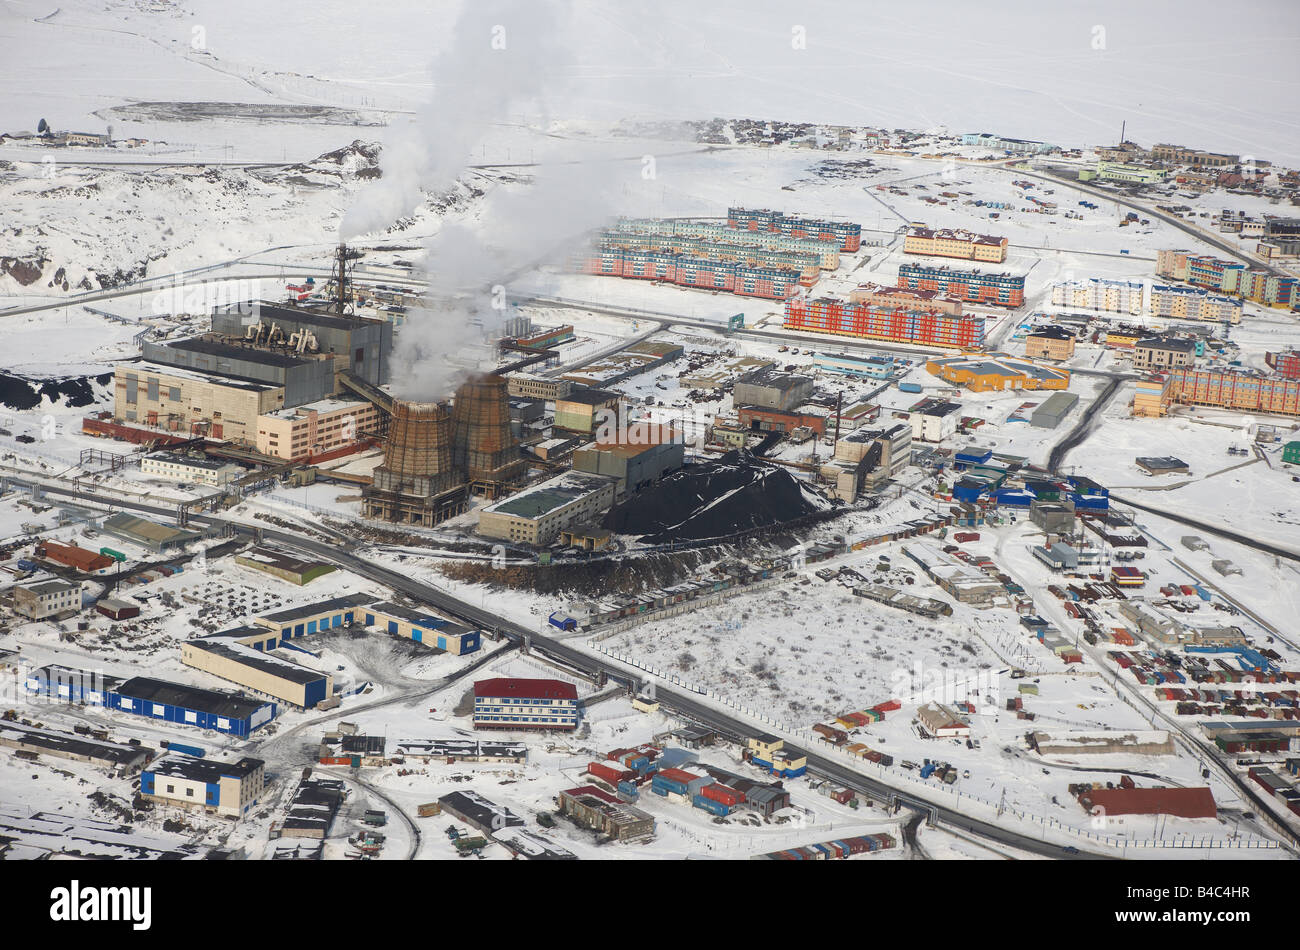 Coal powered polluting power station close to apartment buildings, Anadyr ,Chukotka Siberia, Russia - Stock Image